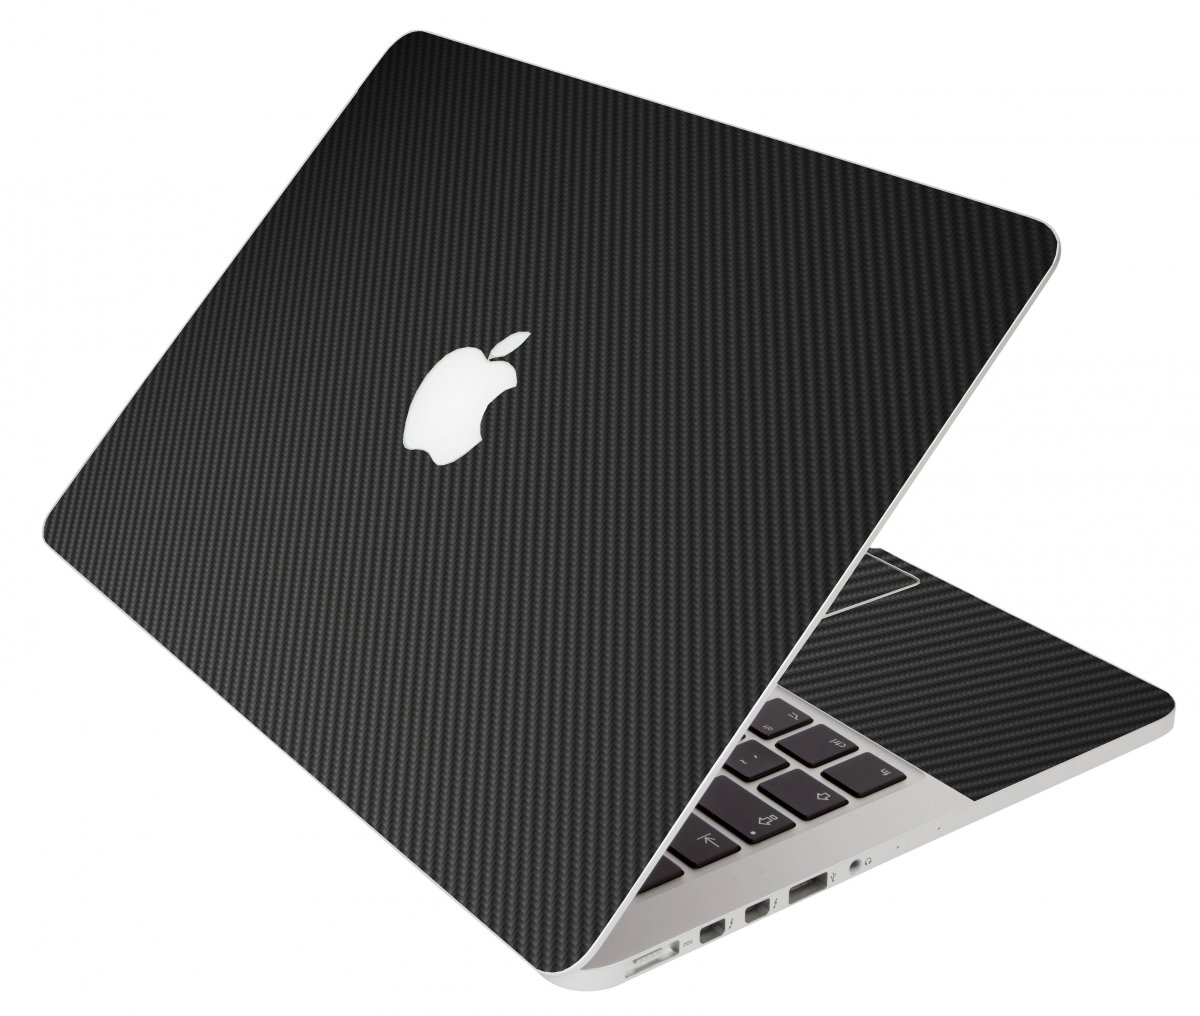 Black Carbon Fiber Apple Macbook Original 13 A1181 Laptop Skin